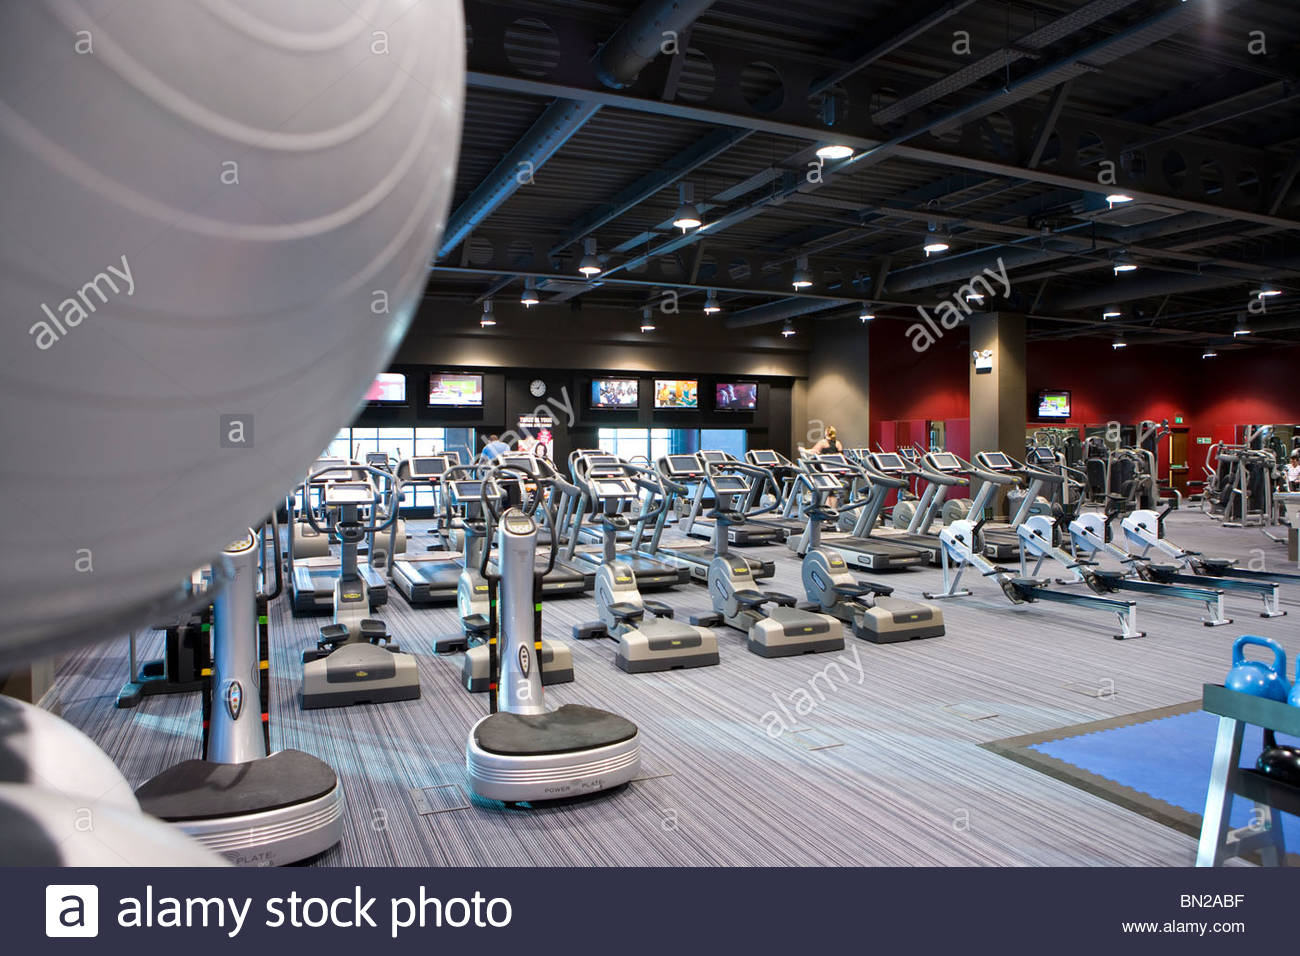 Exercise equipment in health club - Stock Image